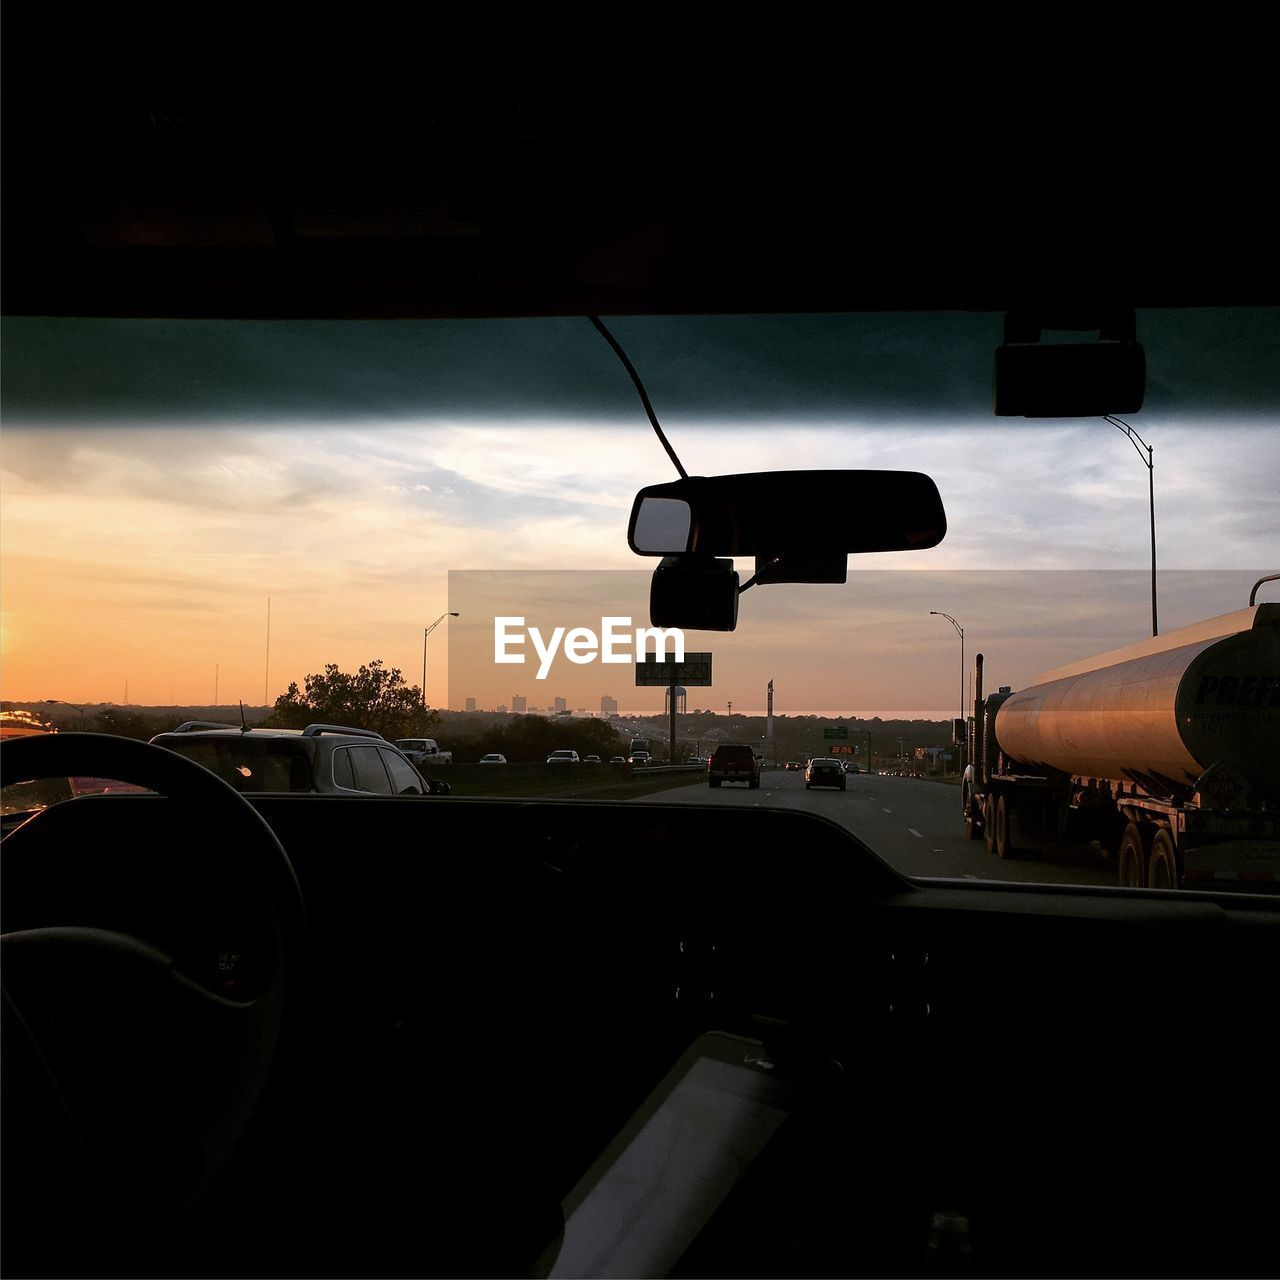 mode of transportation, transportation, car, land vehicle, cloud - sky, sunset, sky, motor vehicle, rear-view mirror, vehicle interior, windshield, orange color, indoors, travel, glass - material, no people, nature, road, transparent, city